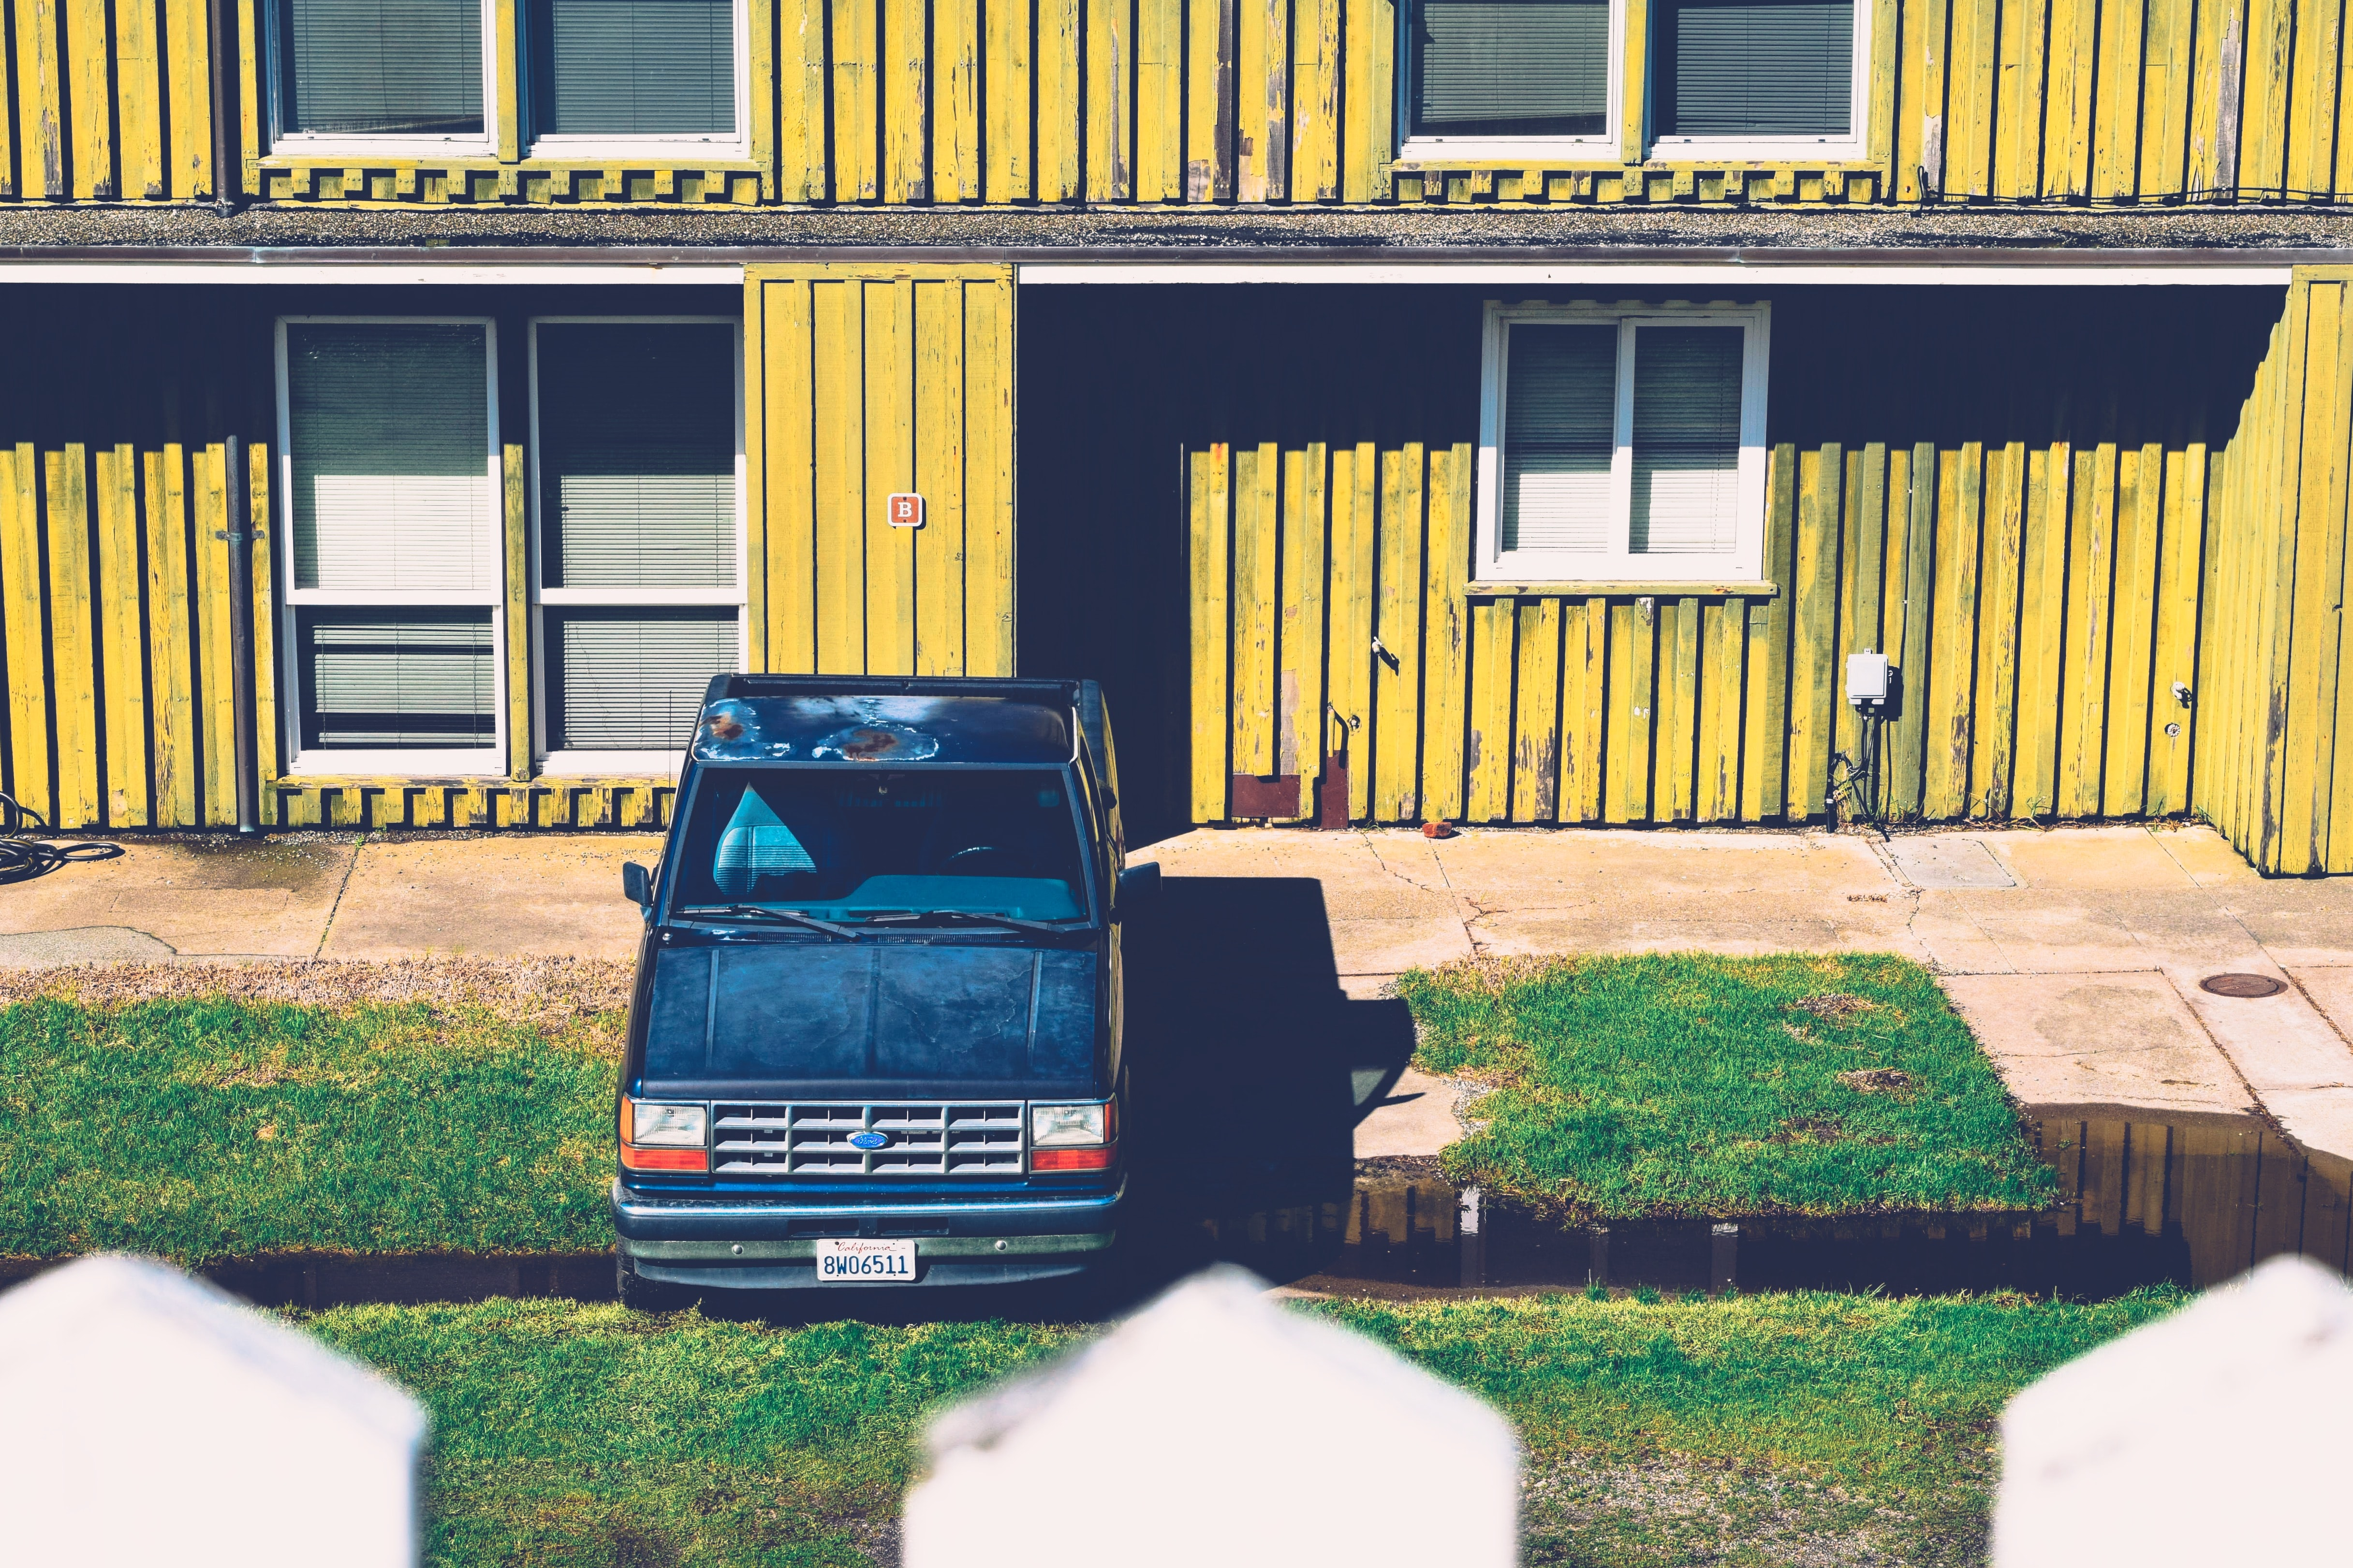 A blue truck with rust casts a shadow on the lawn of a yellow building